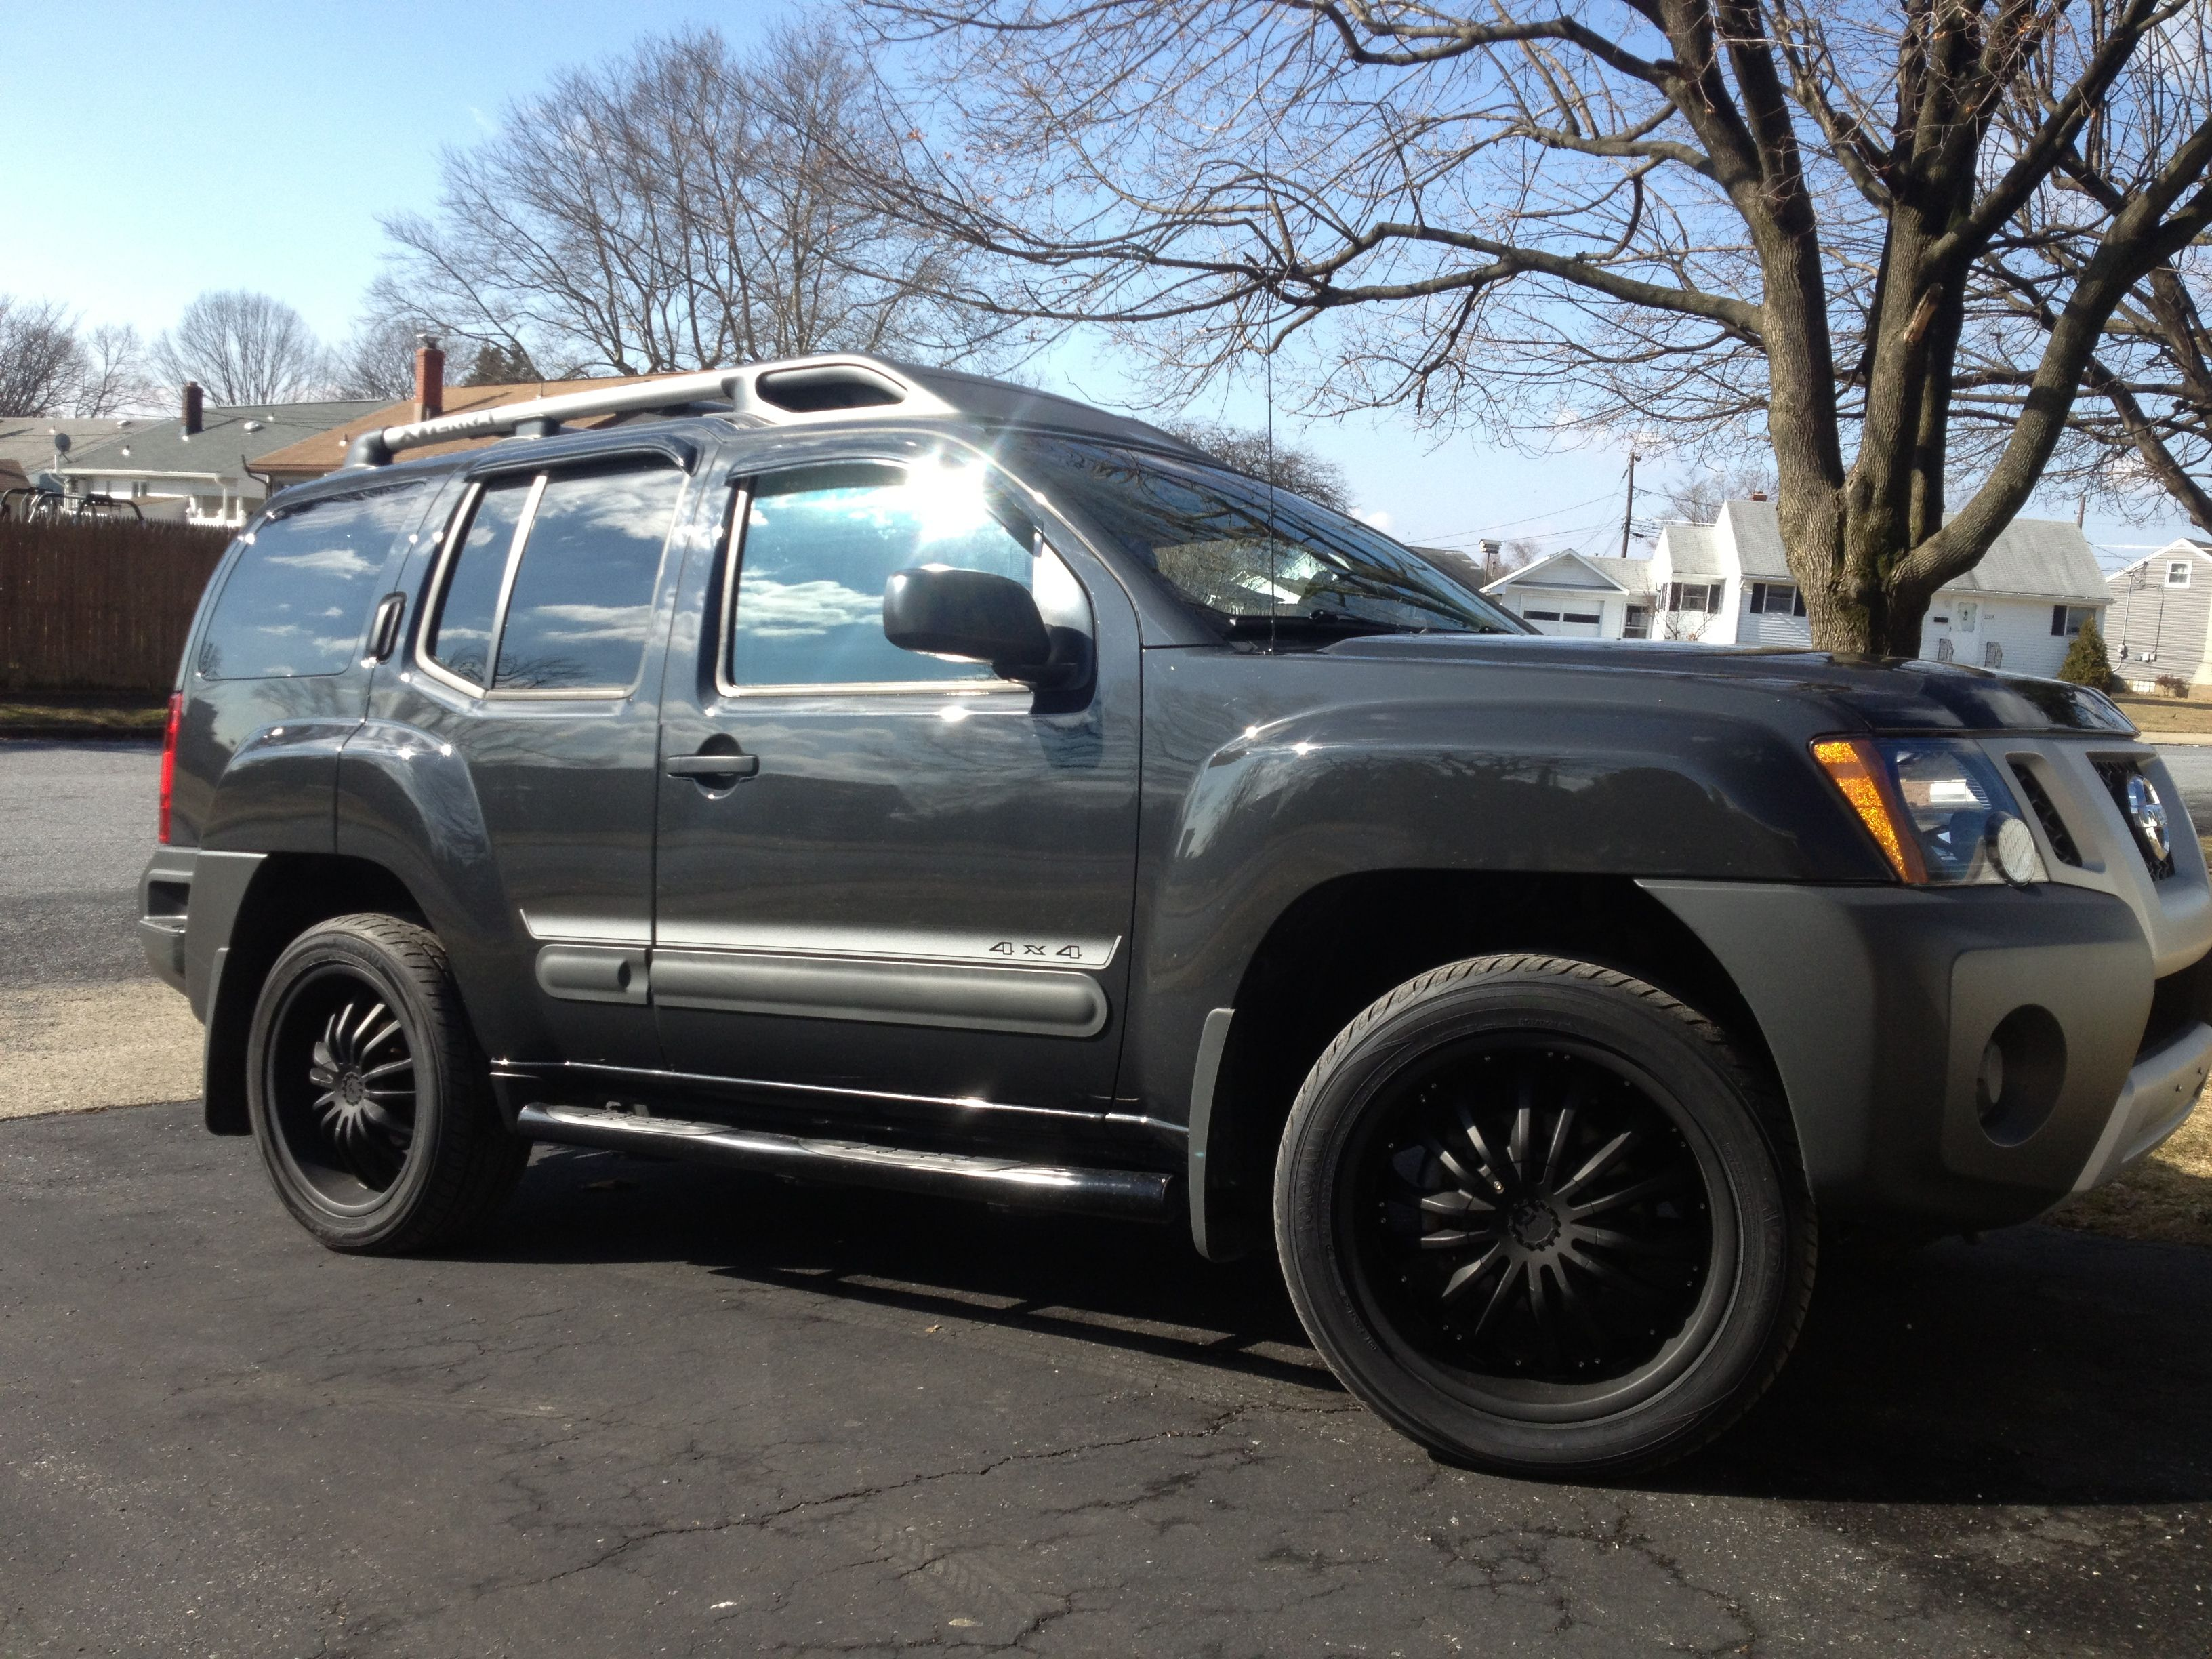 My suv nissan xterra hooked up with rims